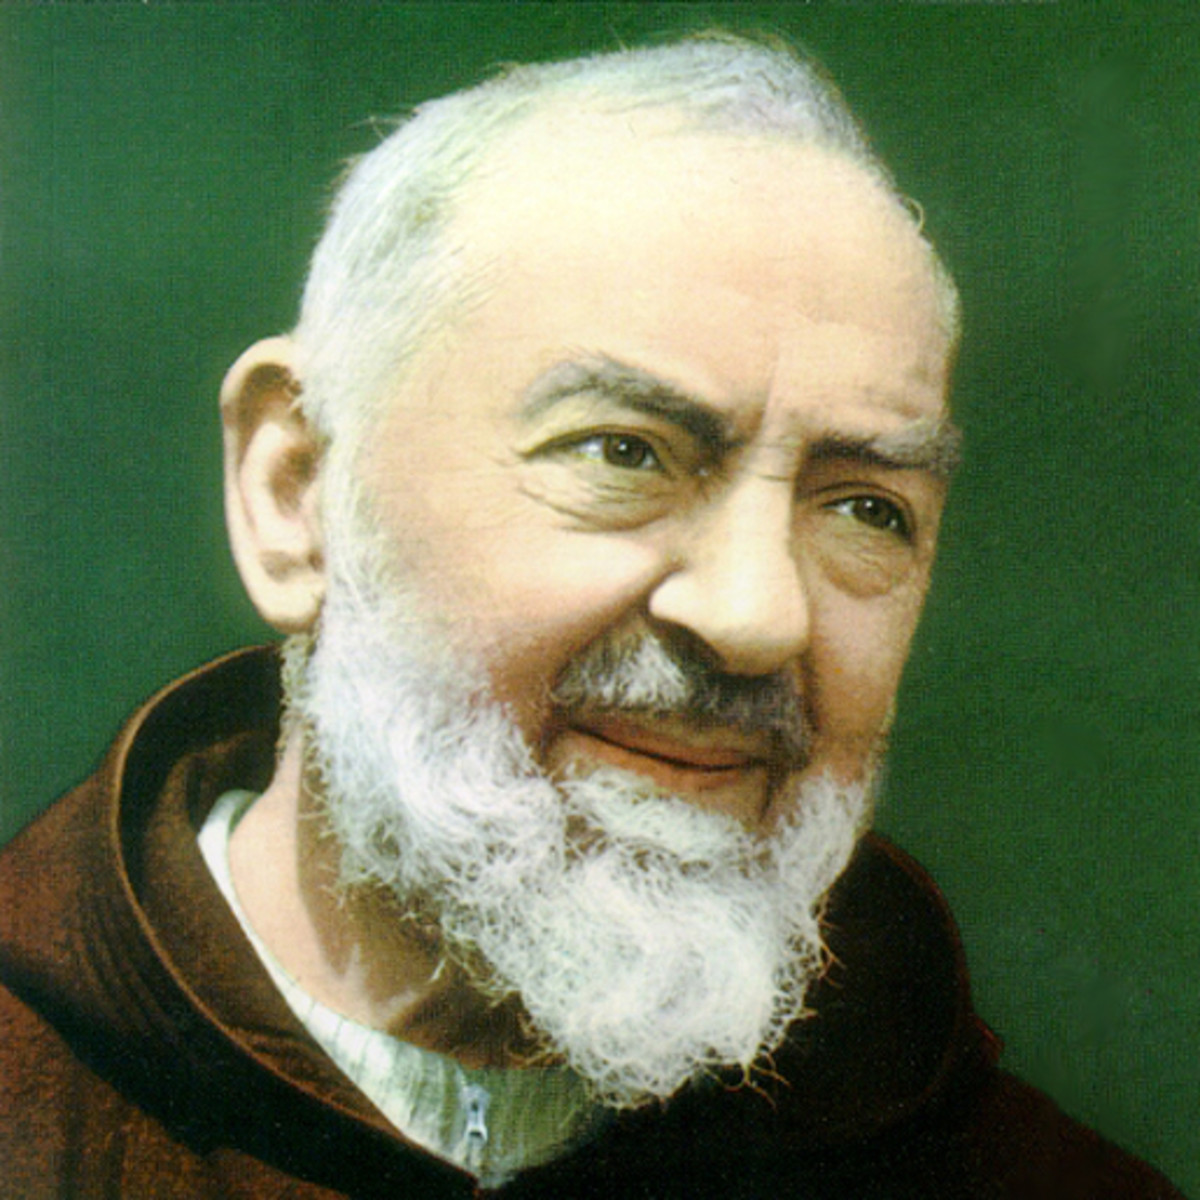 Officially, Padre Pio is St. Pio since his canonization in 2002.